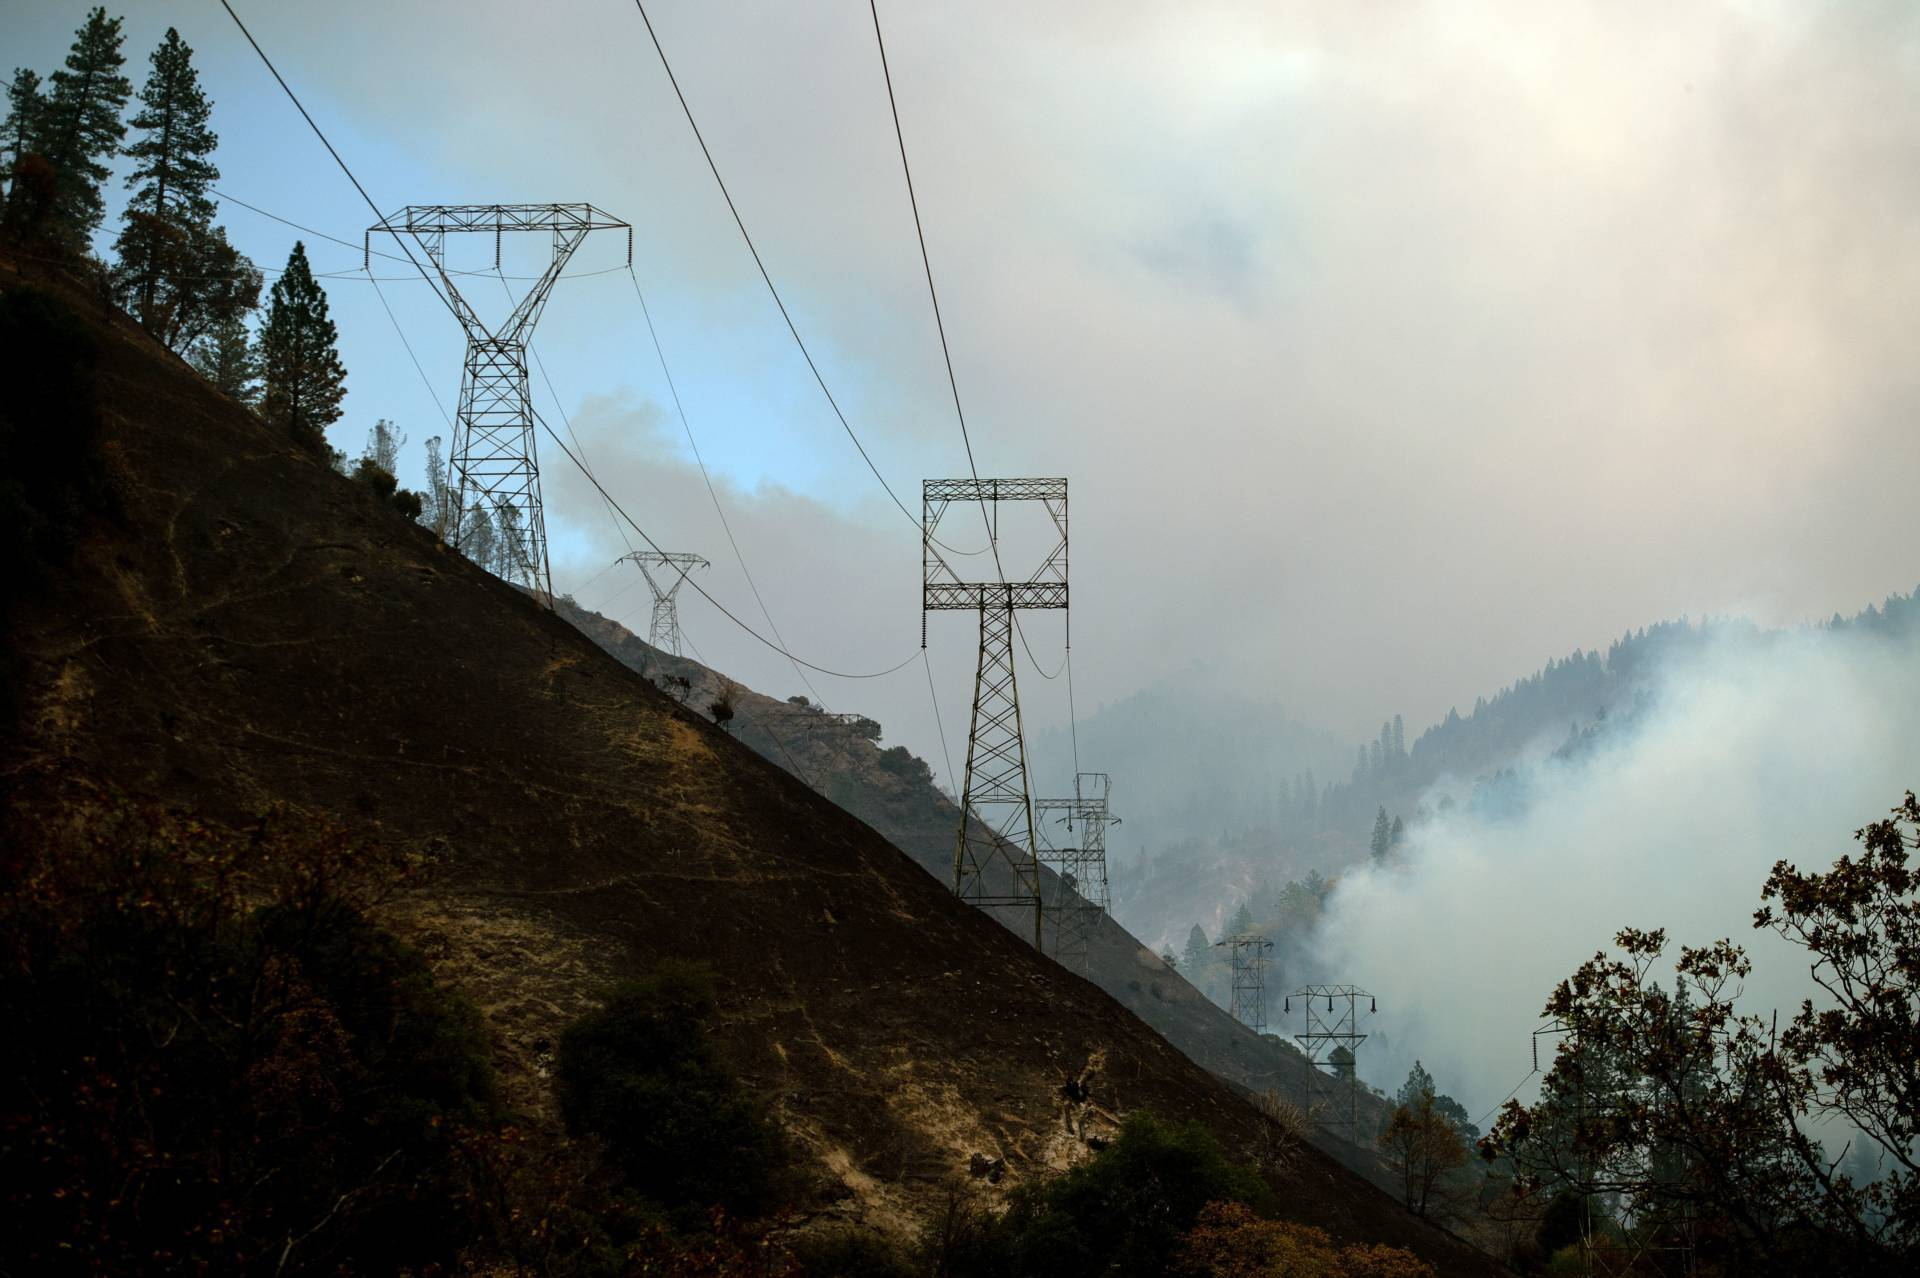 PG&E transmission line towers on the Caribou-Palermo line are seen against a smoky landscape adjacent to the Feather River in Butte County and close to the spot where officials say the Camp Fire began. Josh Edelson/AFP-Getty Images